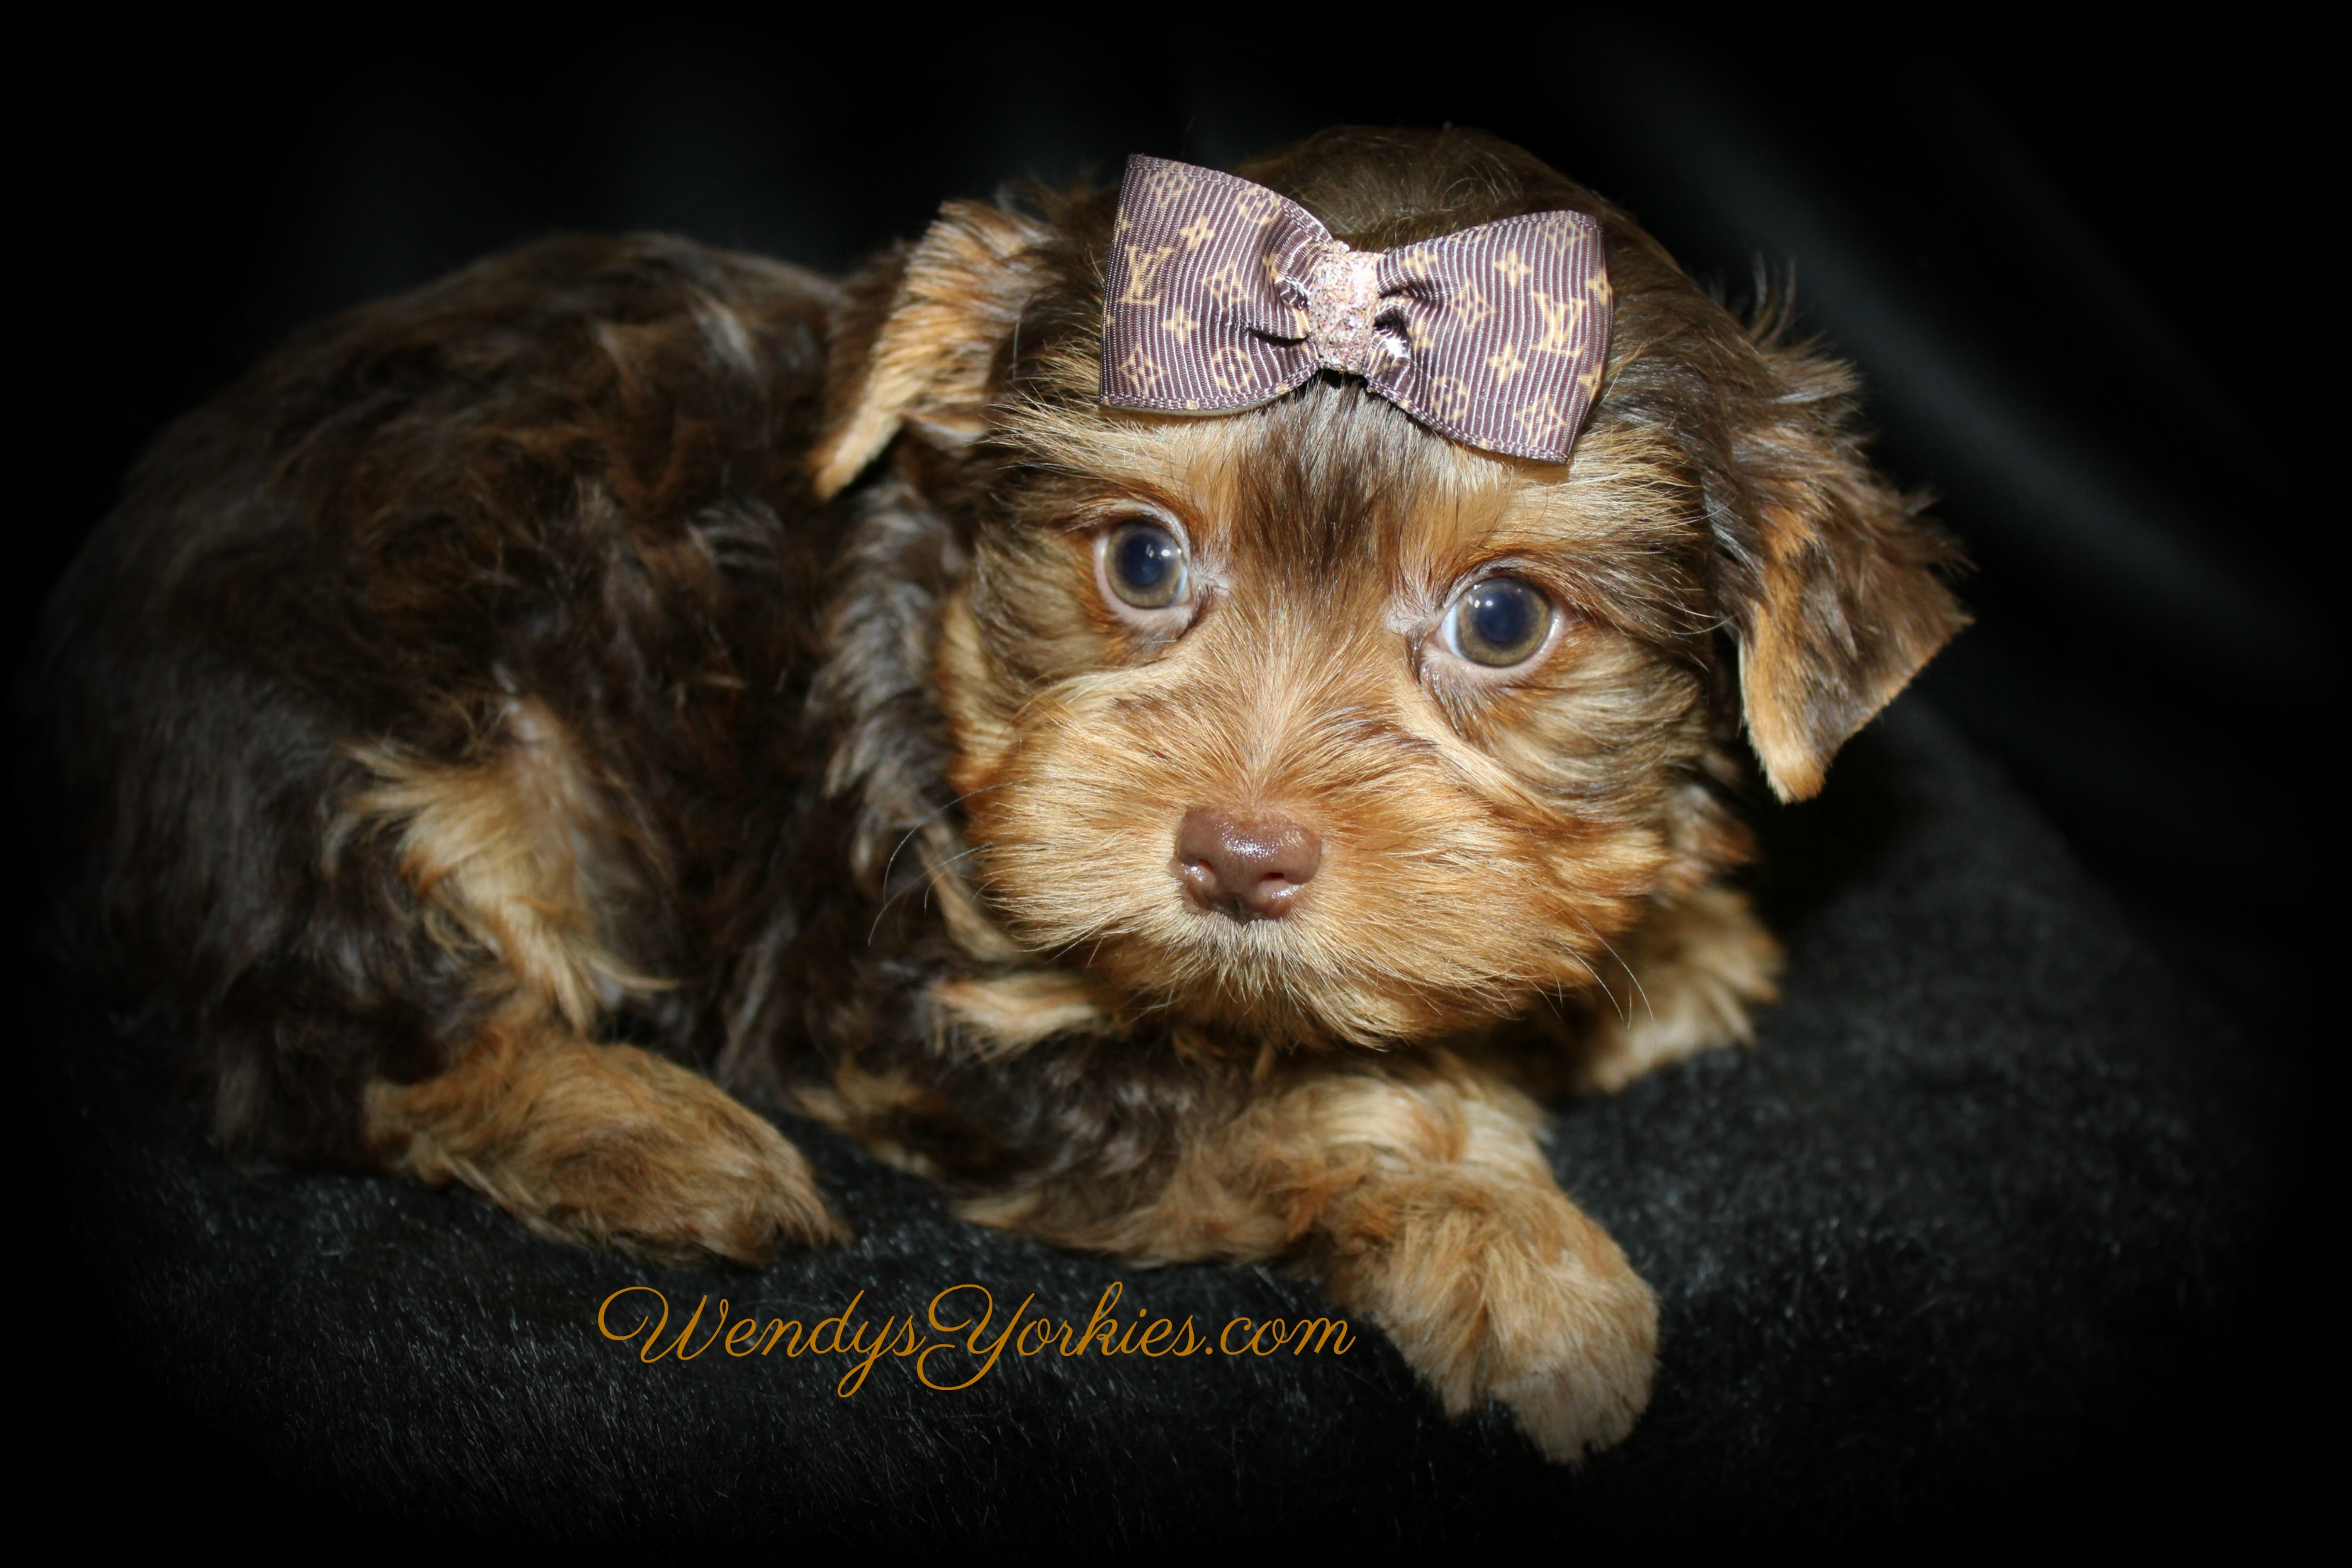 Chocolate Yorkie puppy for sale, Harley cm1, WendysYorkies.com